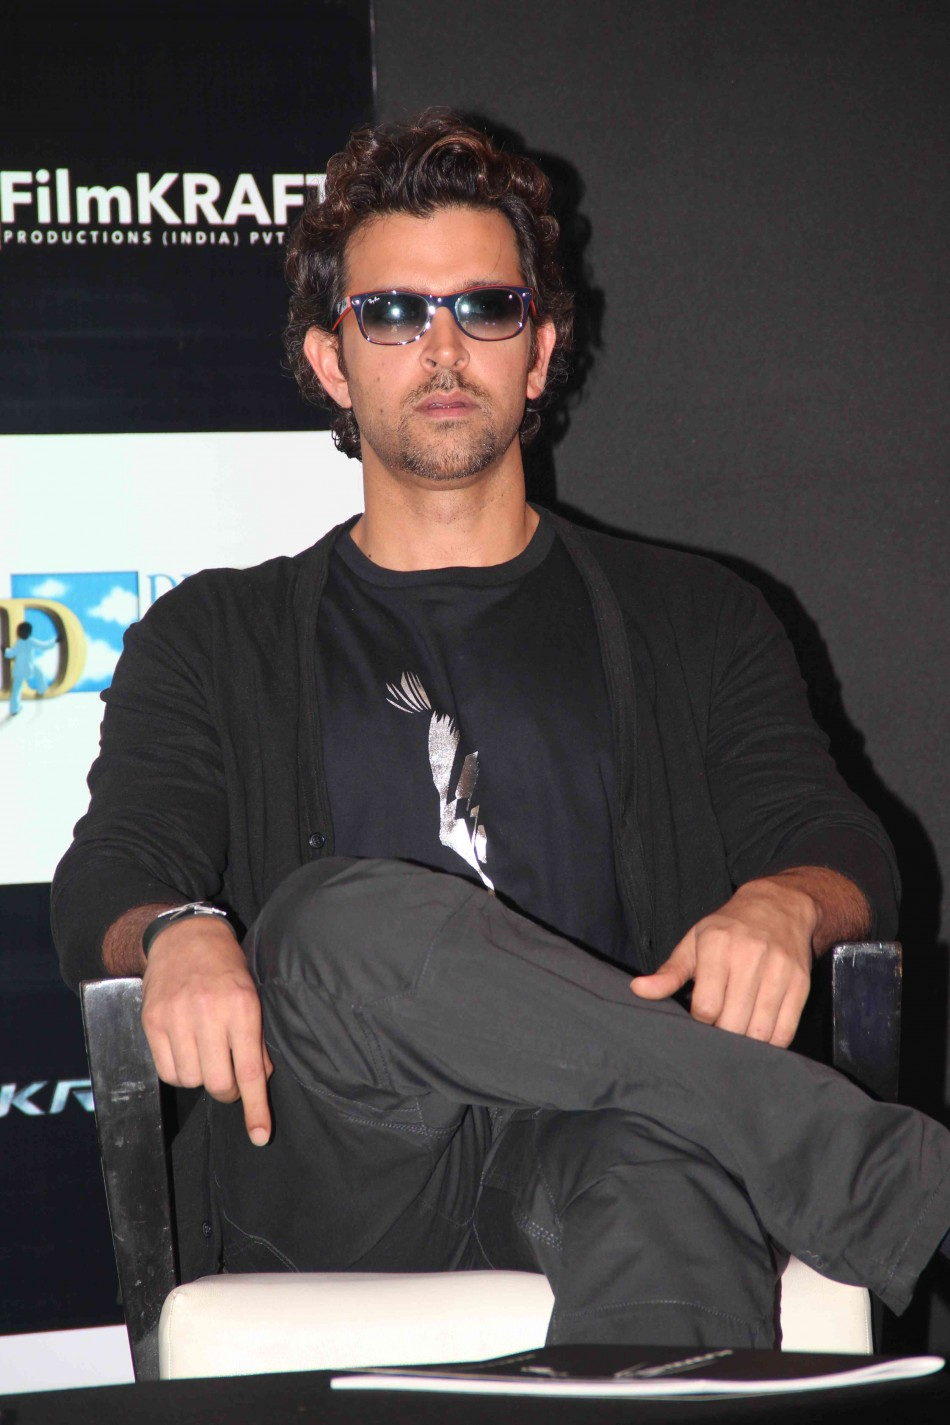 13oct Krrish3Merchandise01 Hrithik Roshan unveils Krrish 3 merchandize